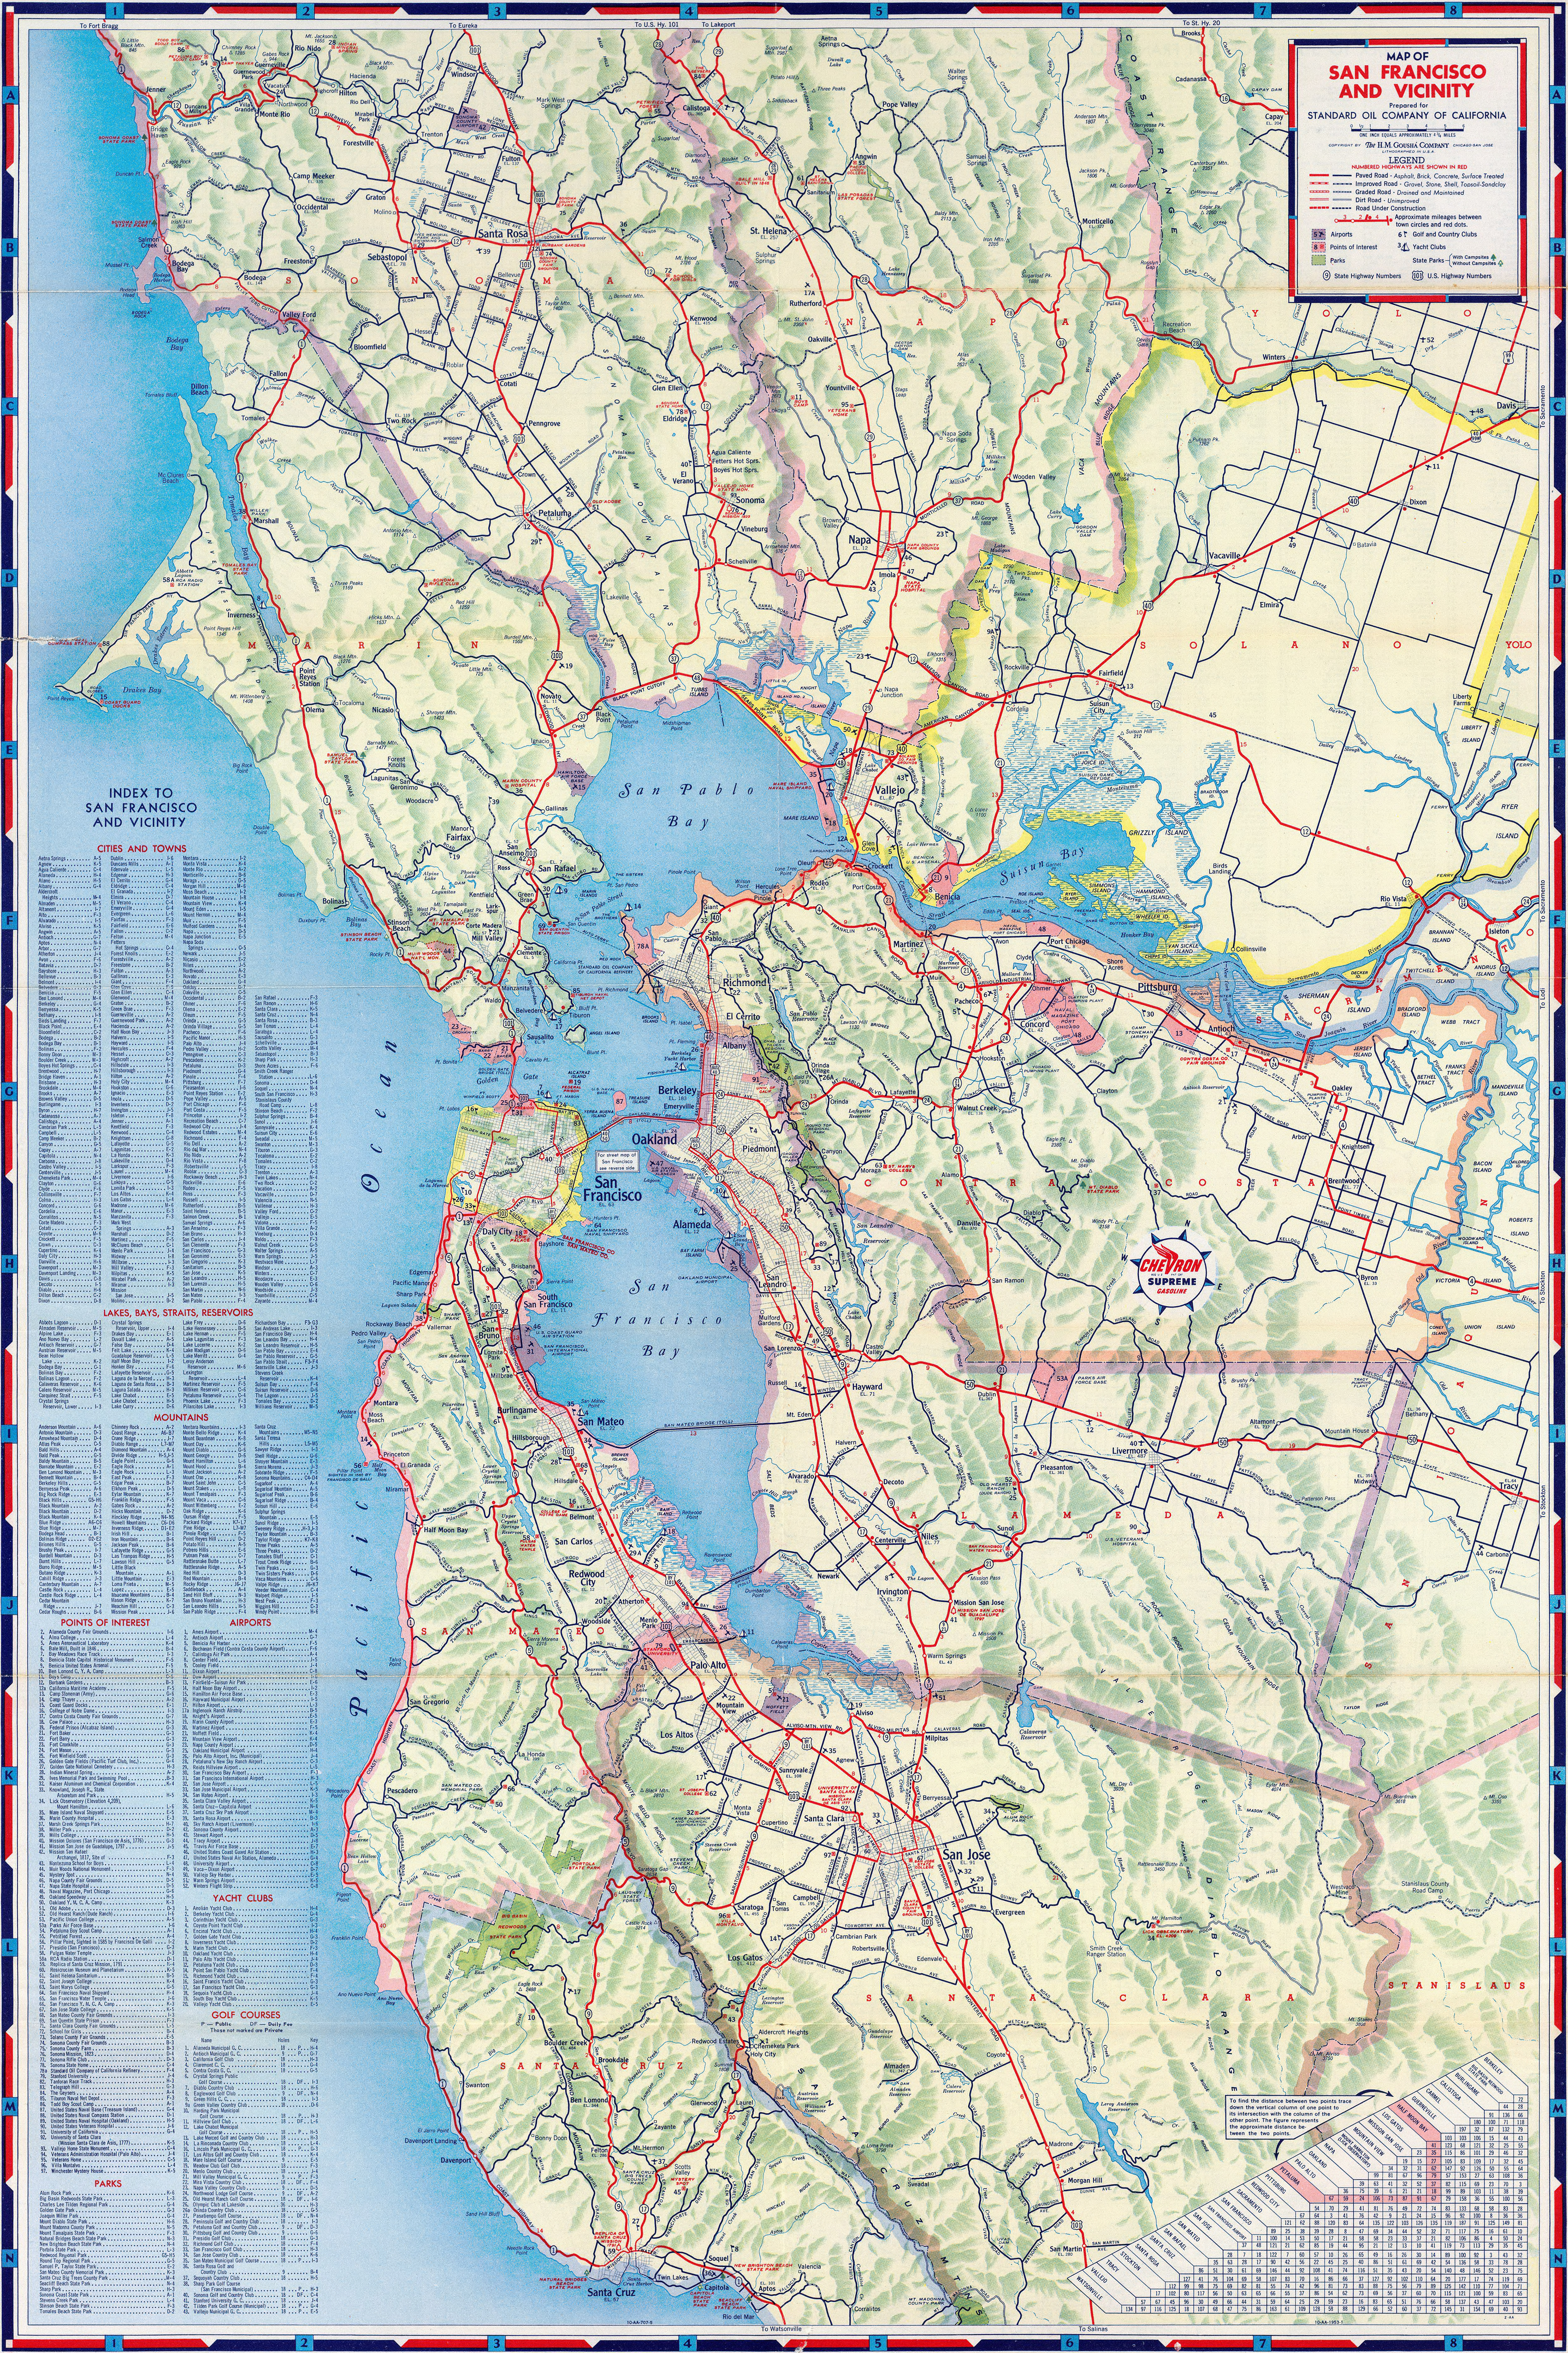 1953 Map of San Francisco Bay Area, courtesy of Chevron and BigMapBlog.com